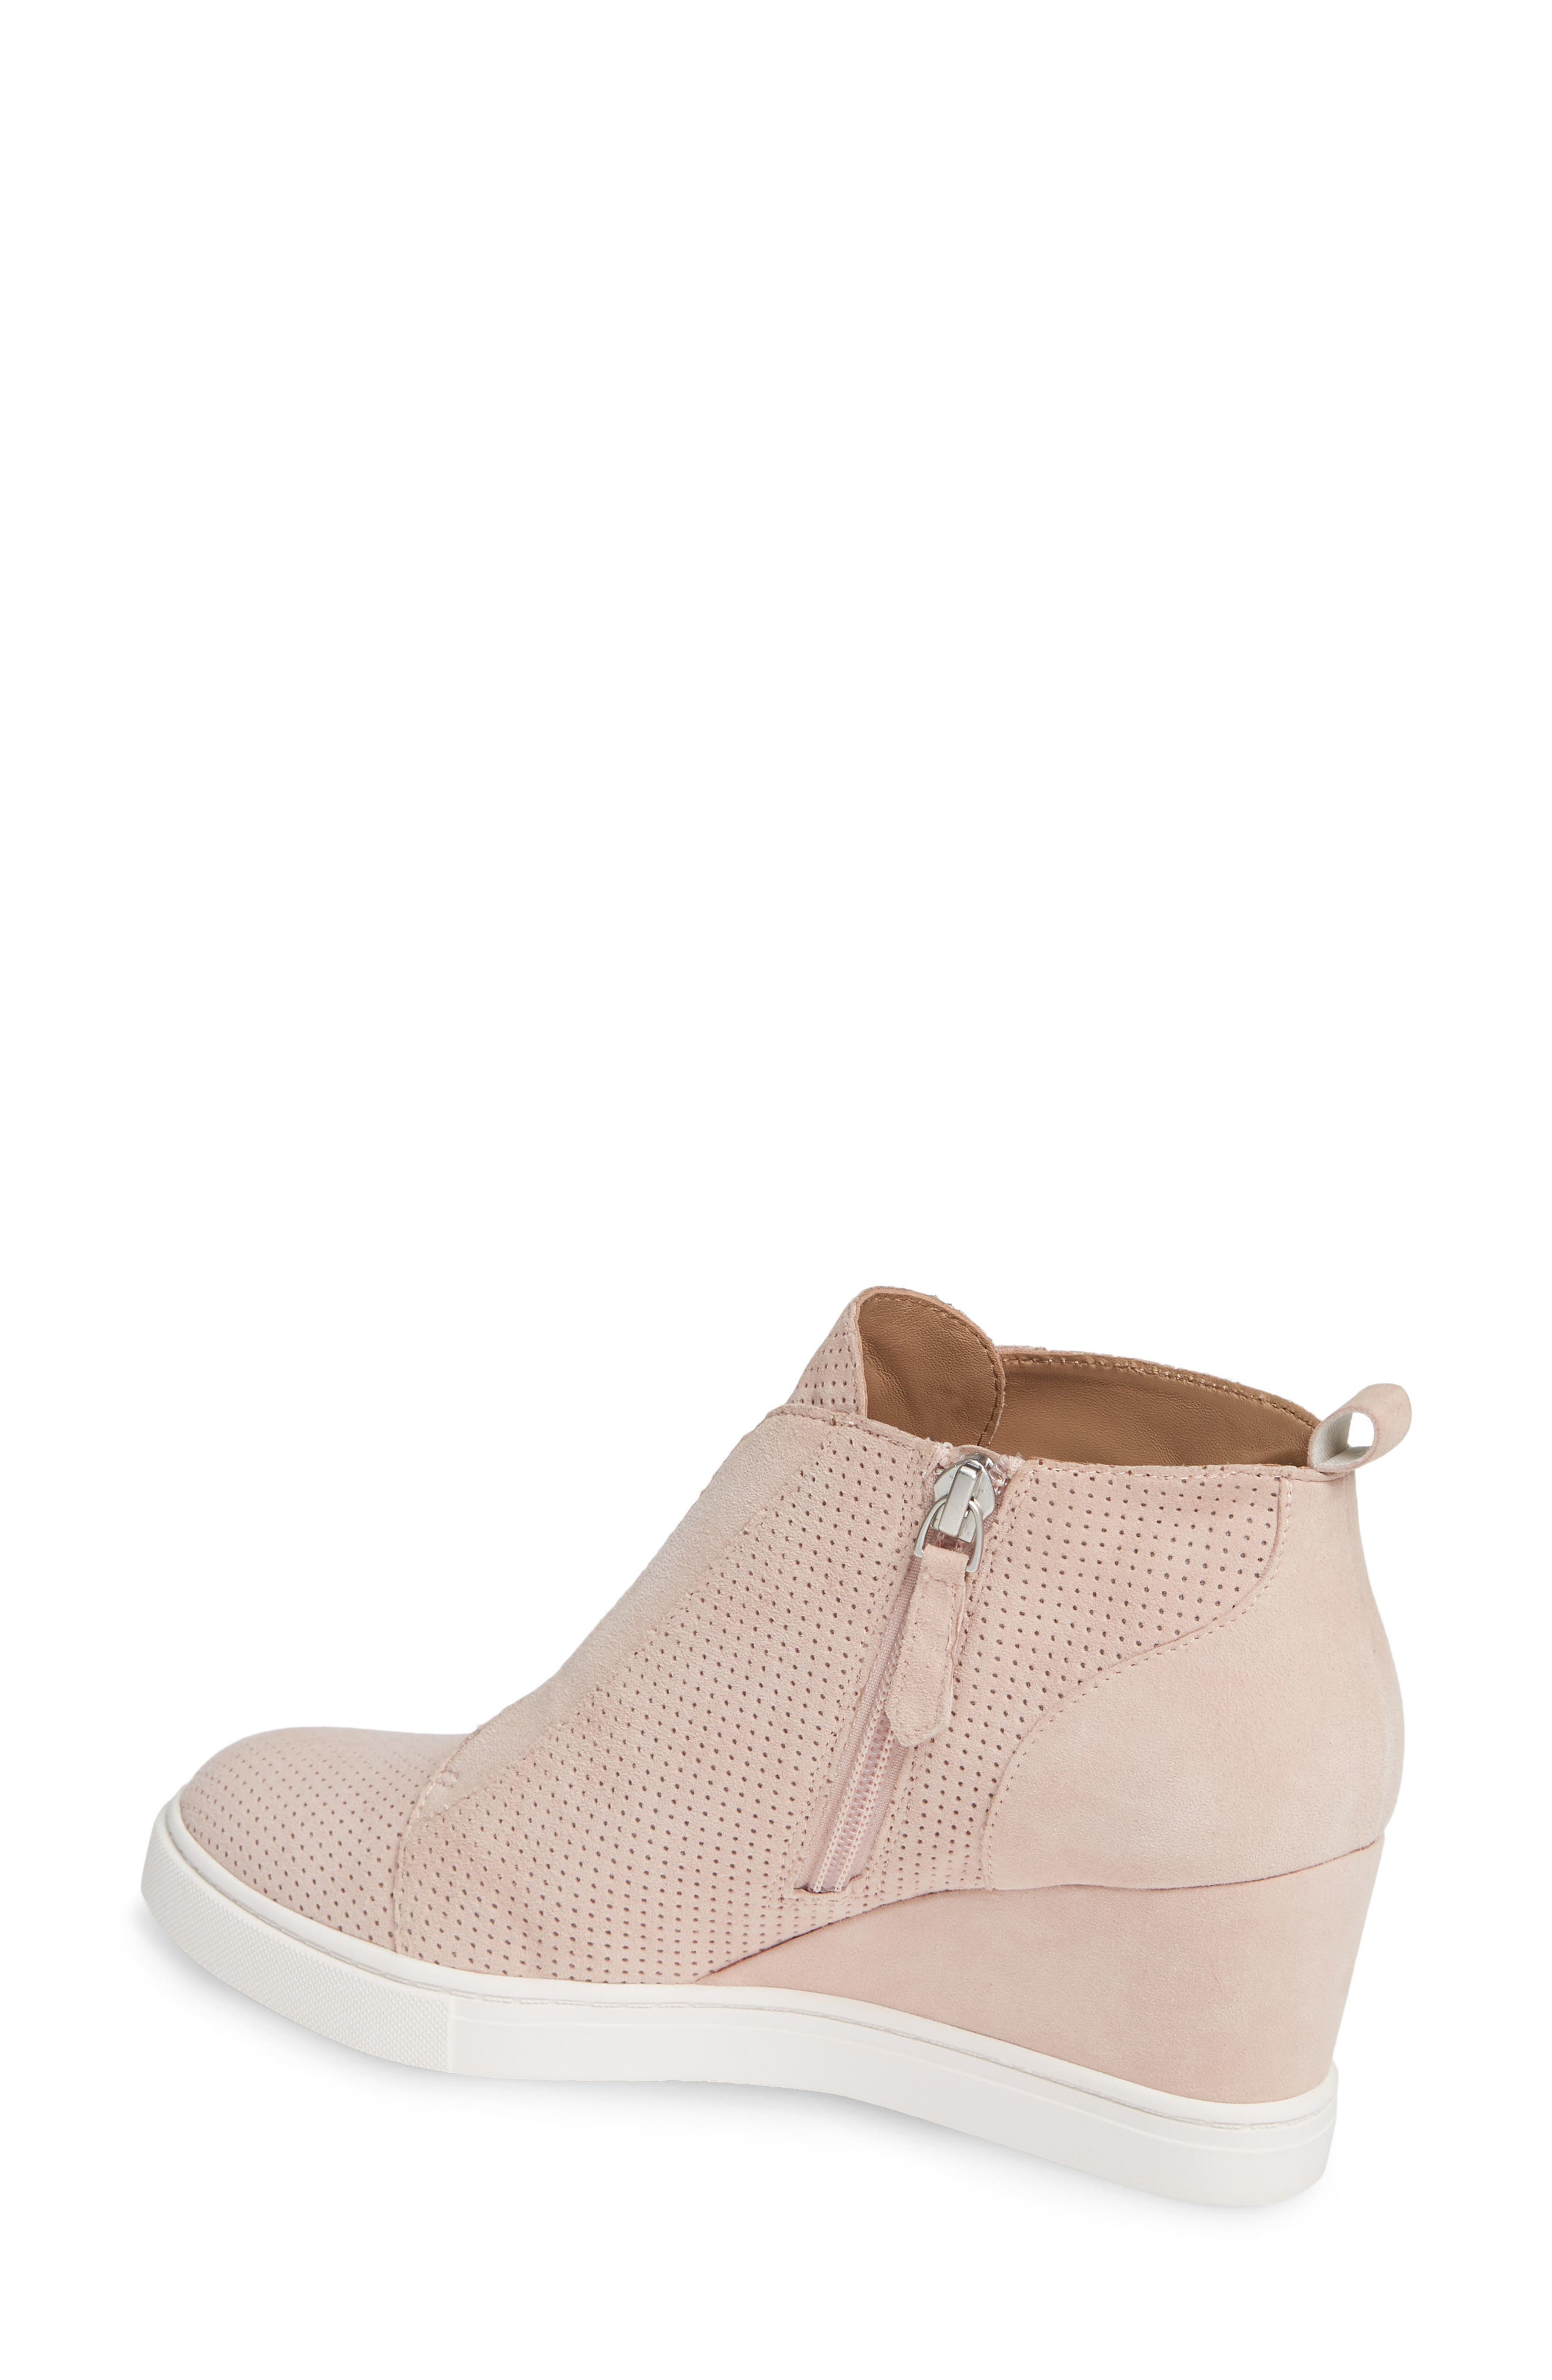 Felicia Wedge Bootie,                             Alternate thumbnail 2, color,                             BLUSH PERFORATED SUEDE